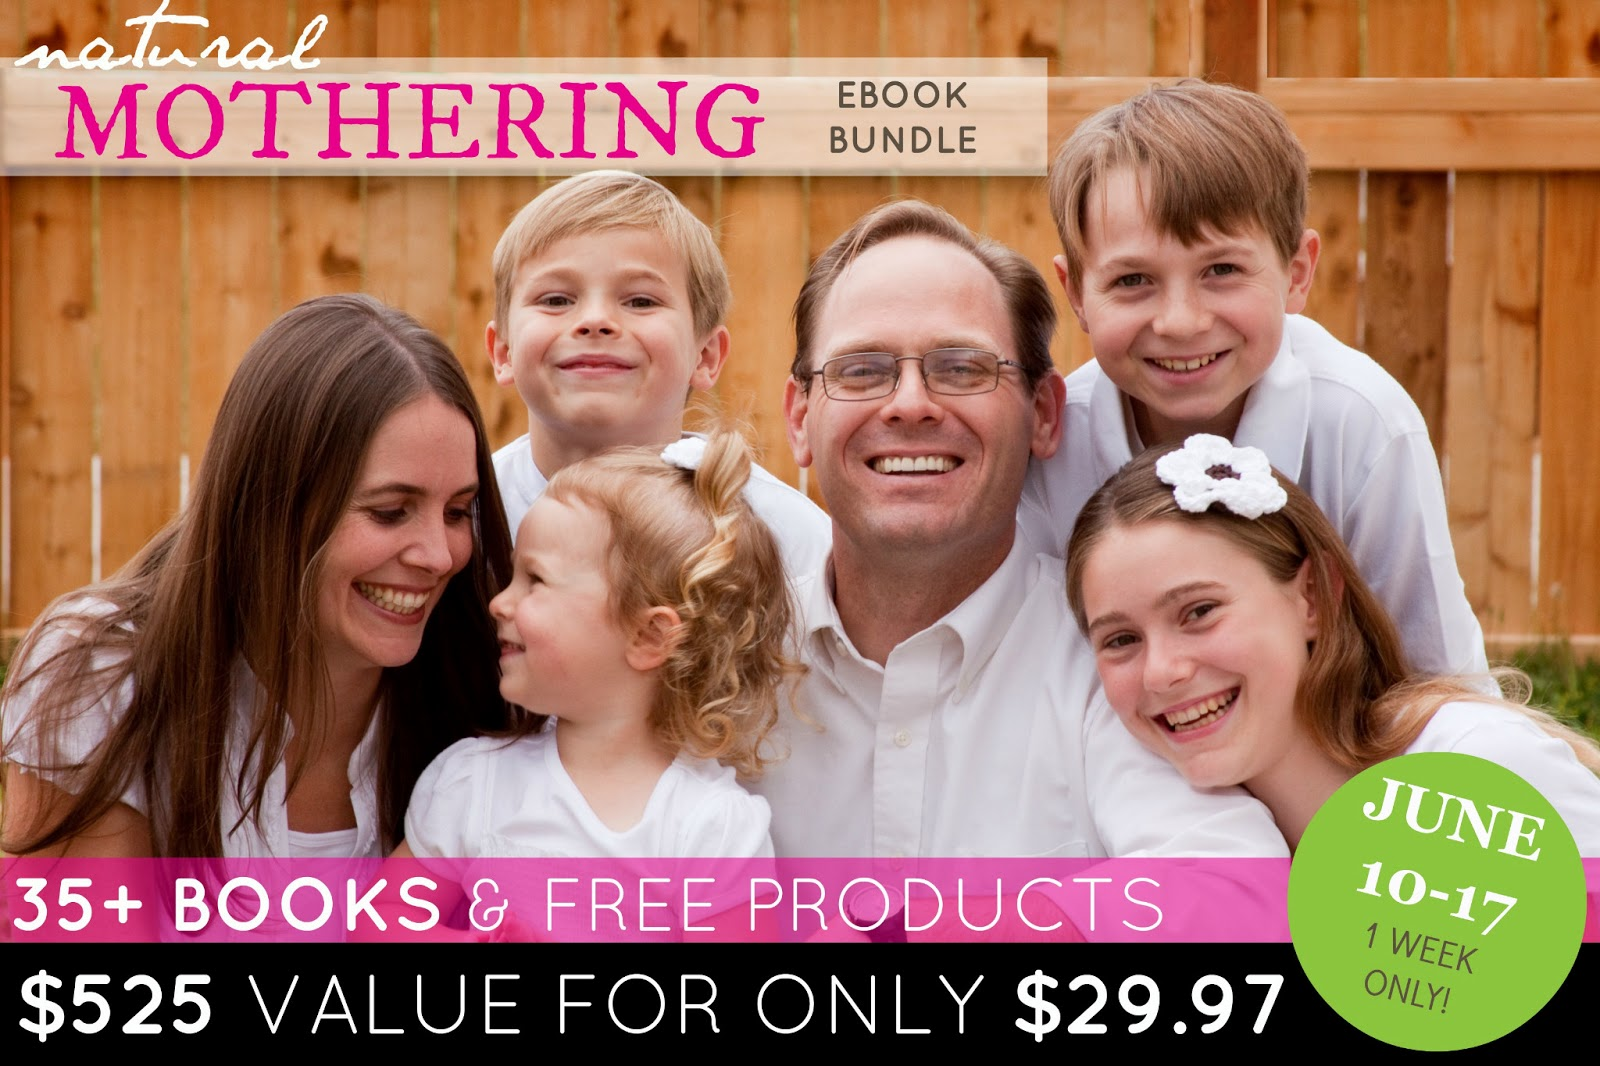 natural-mothering-bundle-600x400-sale